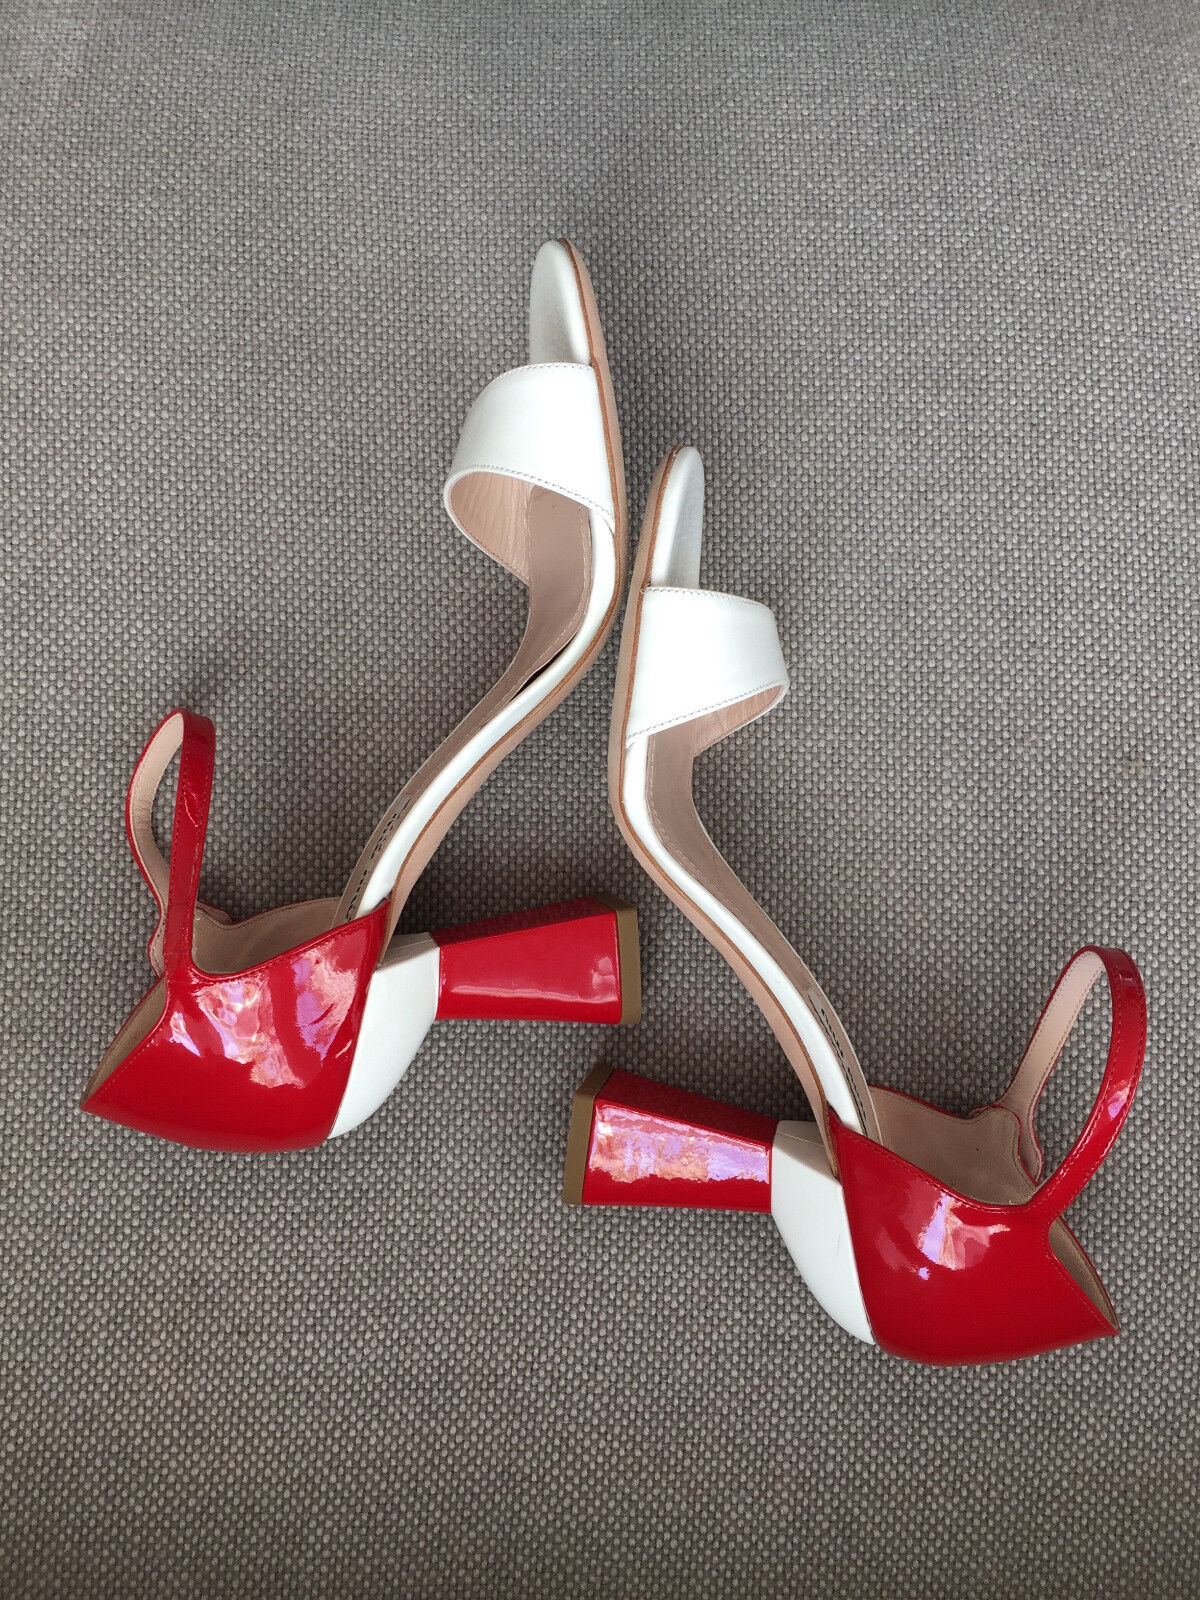 MIU MIU LACKLEDER SANDALE HIGH HEEL WEISS - ROT 36,5